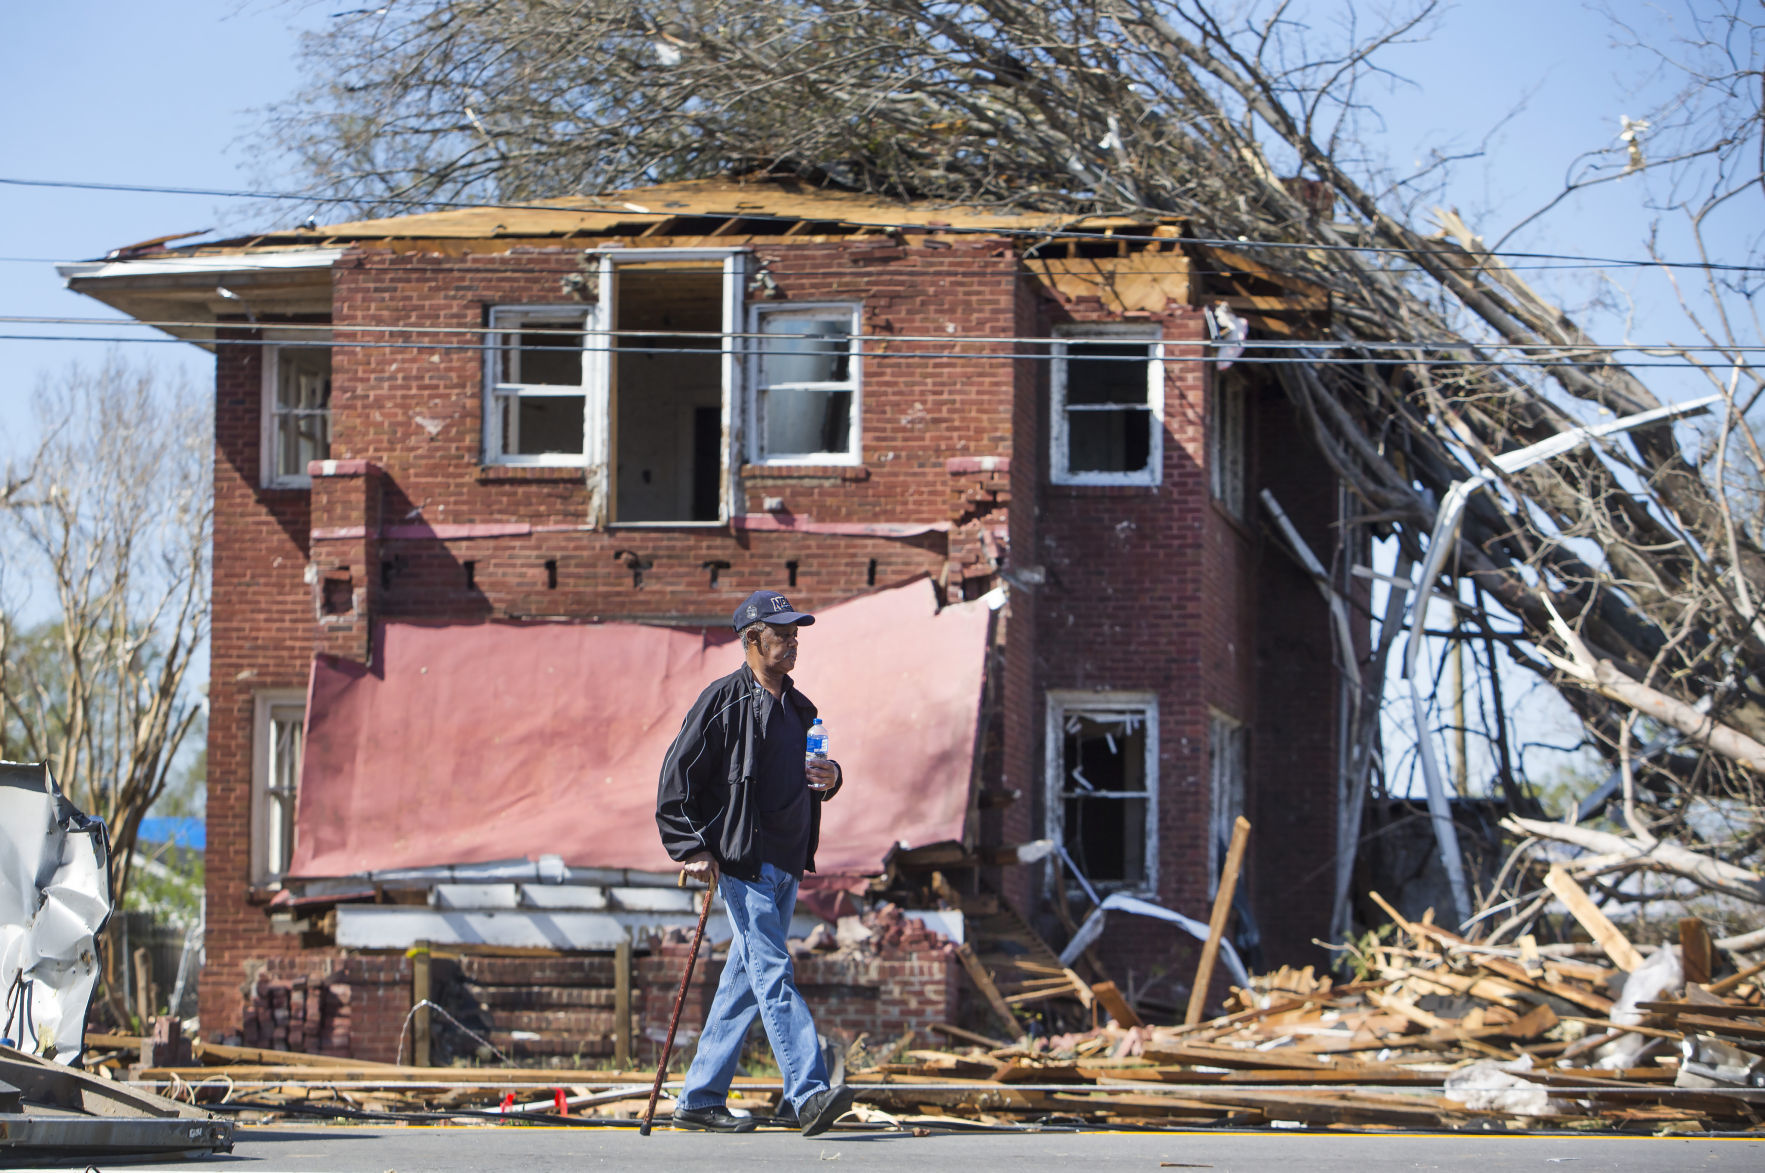 WGHP/FOX8 to hold telethon to help victims of Sunday's tornado | Winston Salem Journal